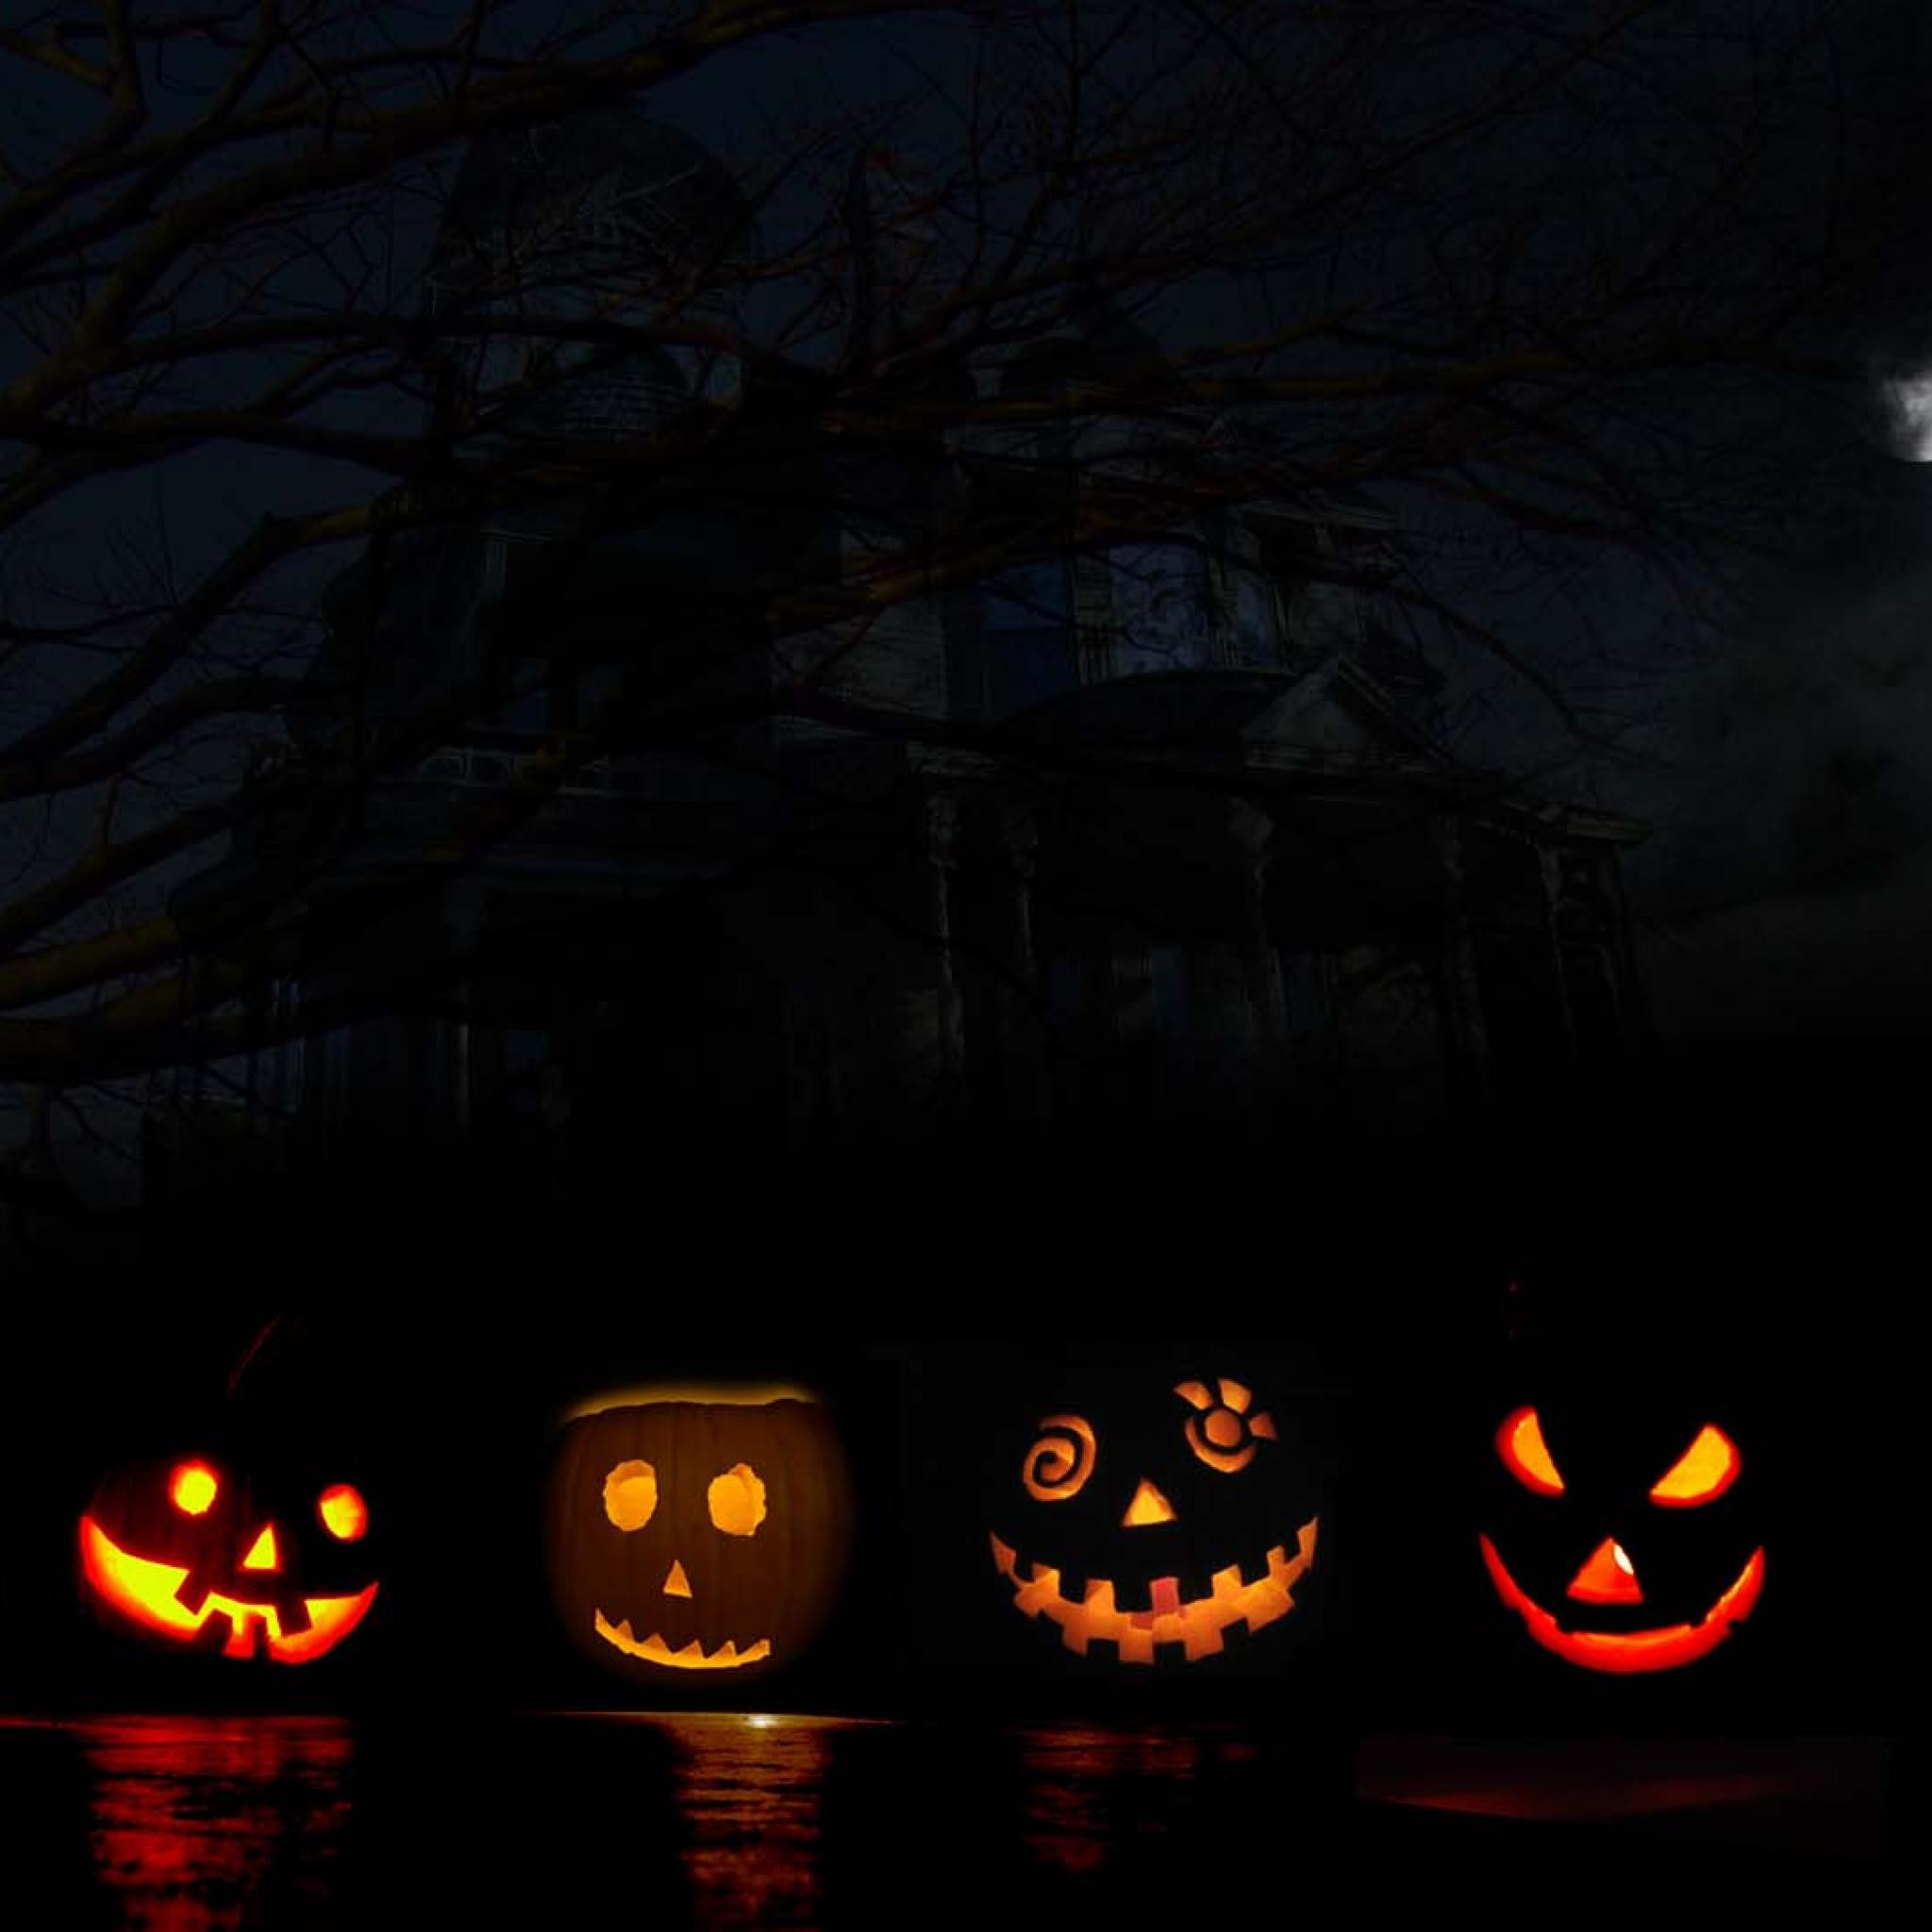 Halloween Haunted House Wallpaper (62+ Images